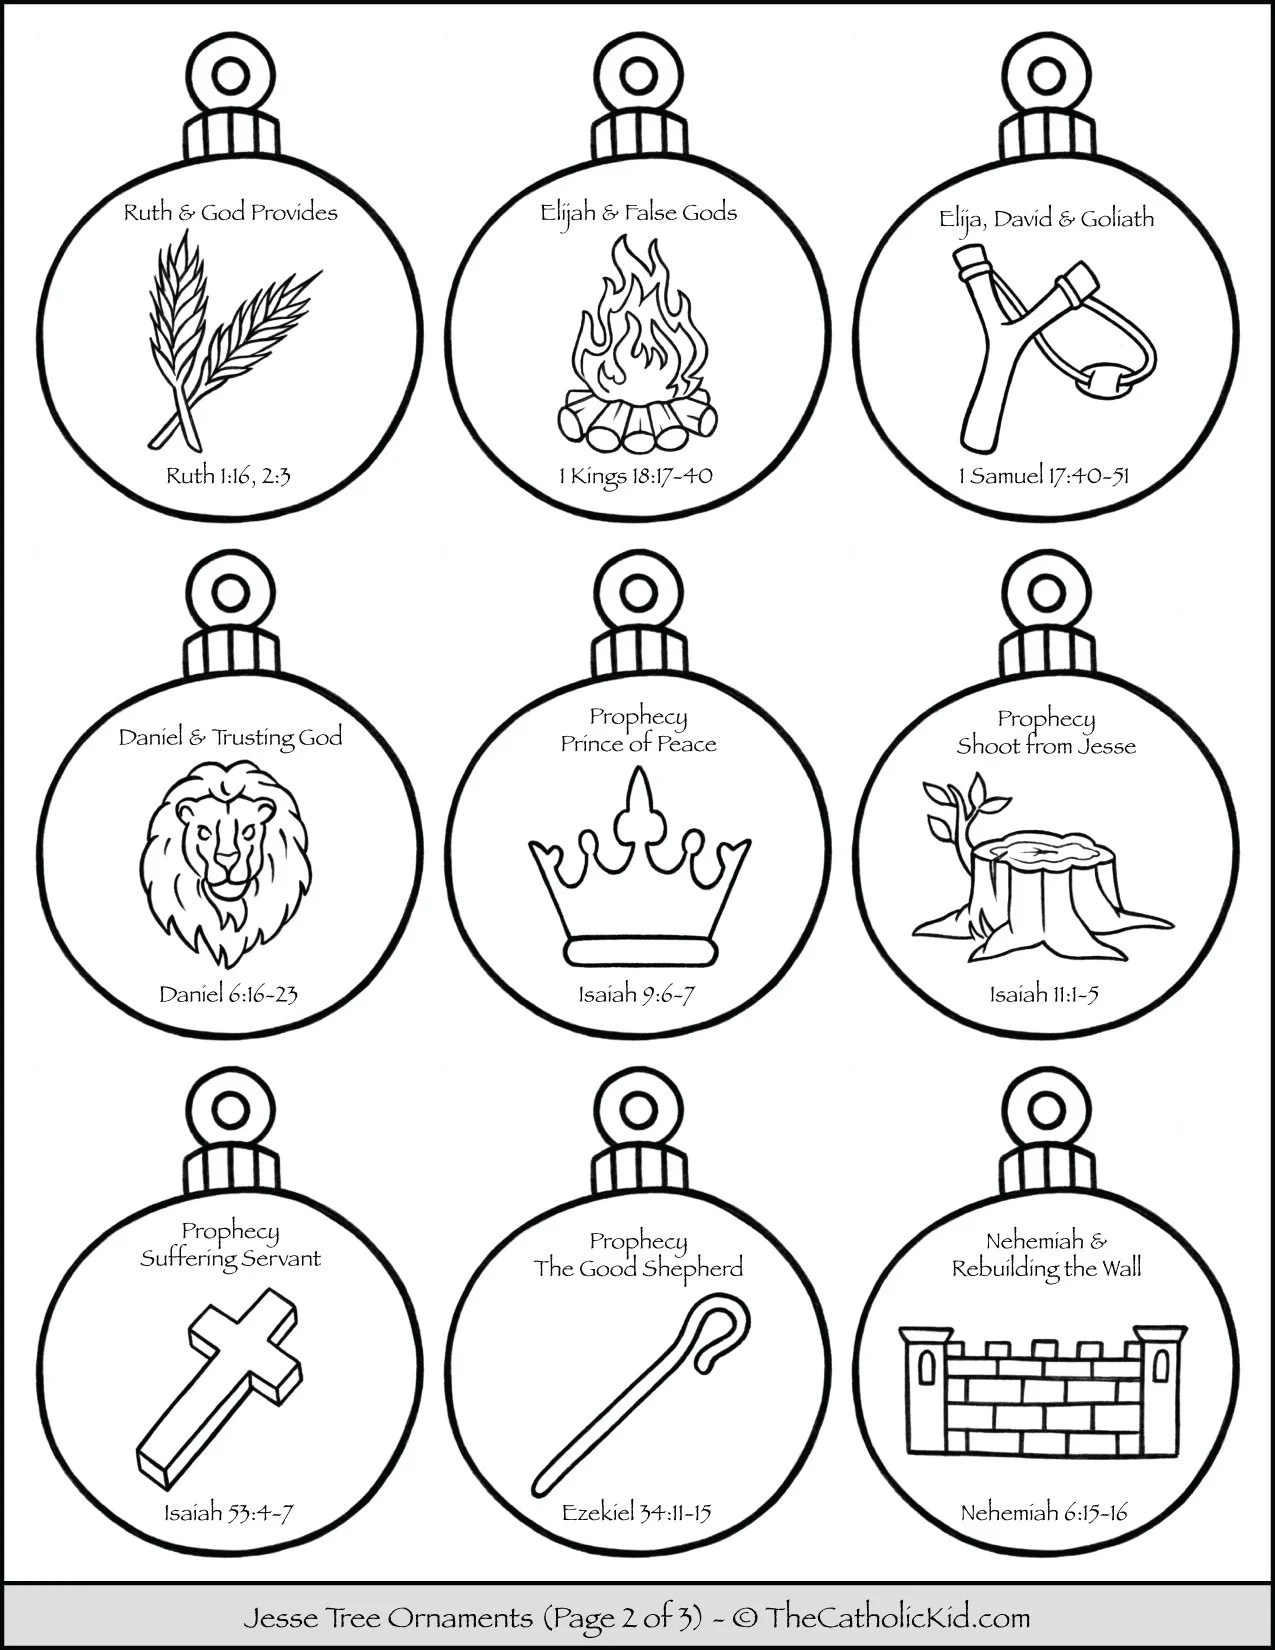 Jesse Tree Ornaments Printable Coloring Page